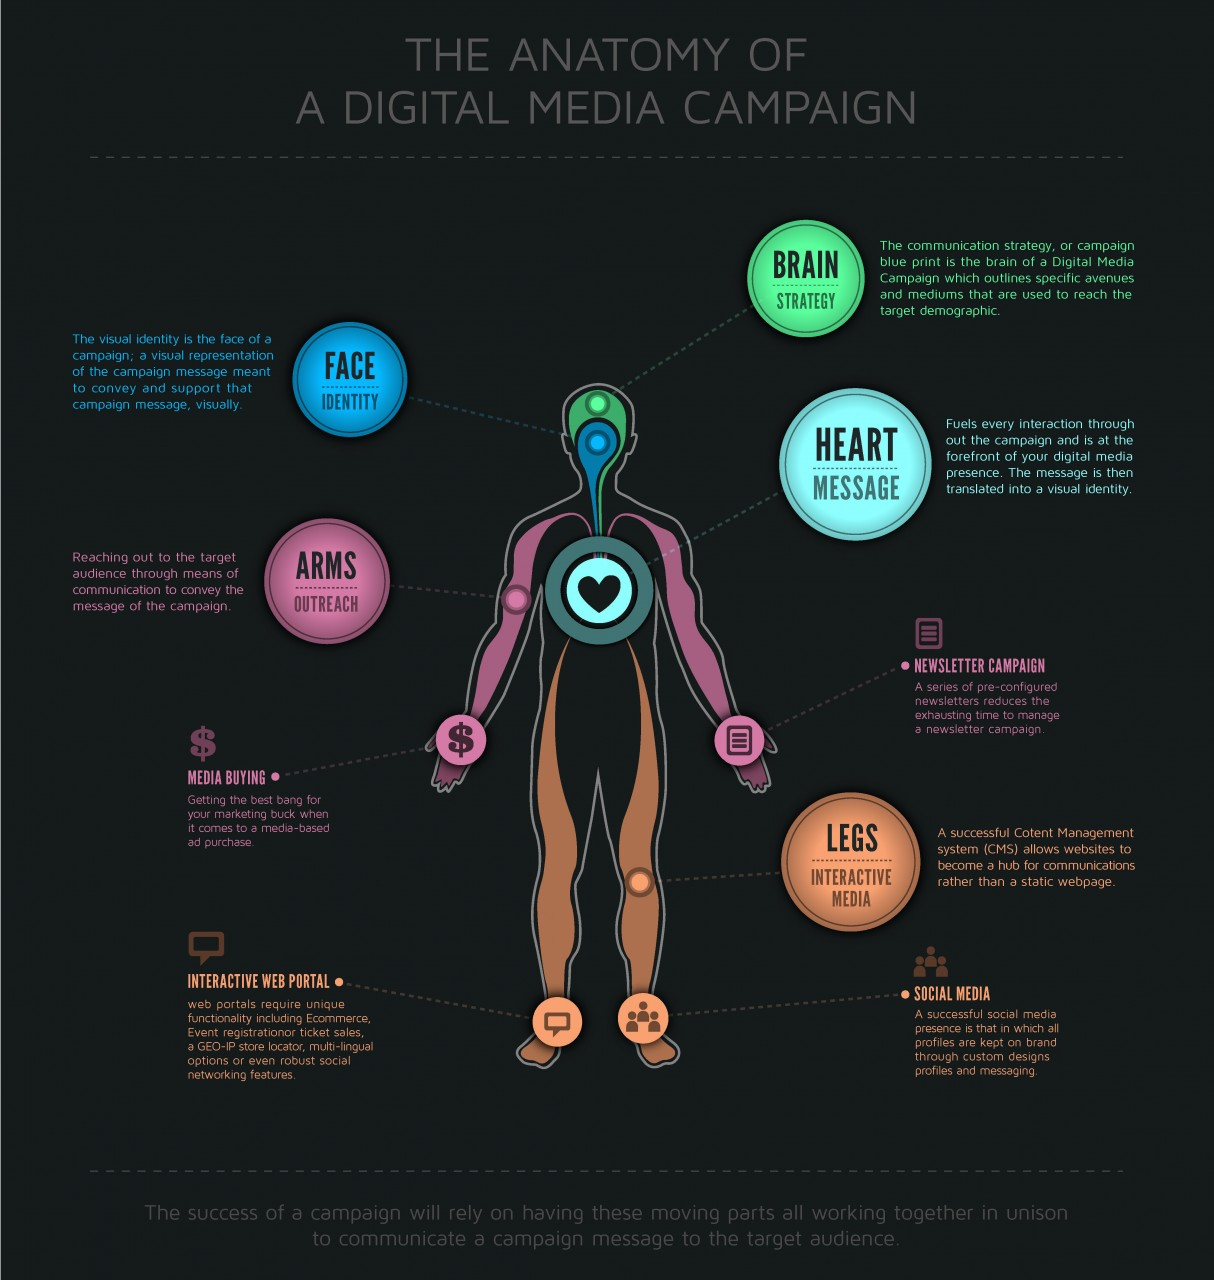 The Anatomy of a Digital Media Campaign